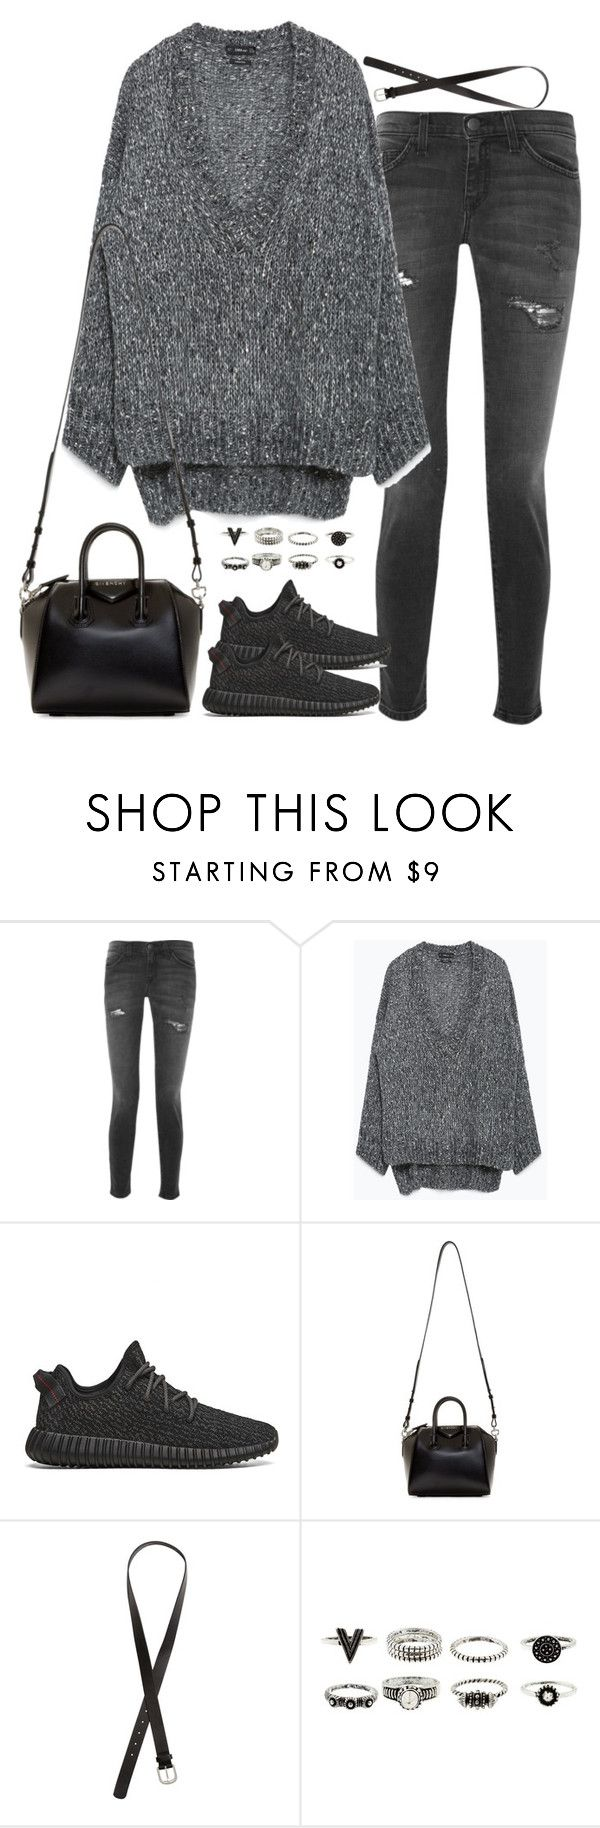 """Untitled#3775"" by fashionnfacts ❤ liked on Polyvore featuring Current/Elliott, Zara, adidas Originals, Givenchy and H&M"